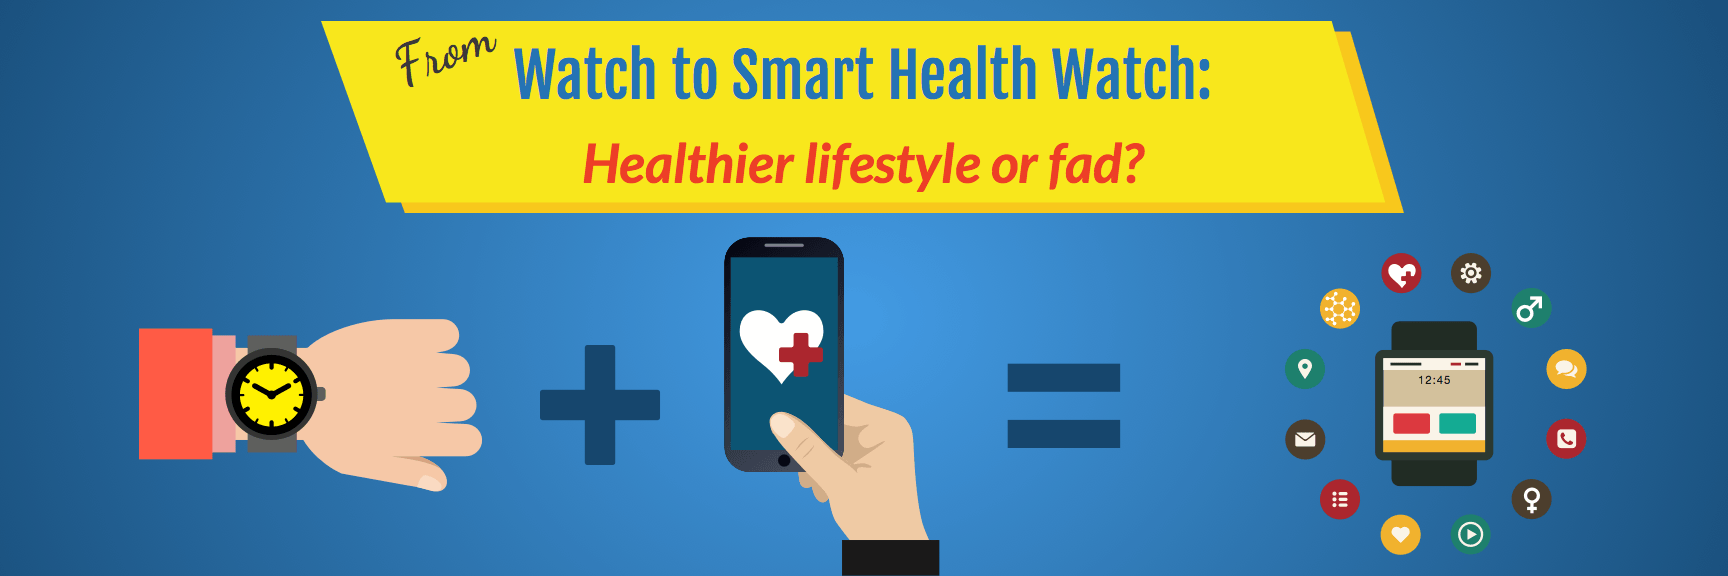 smartwatches keeping a close watch on our health